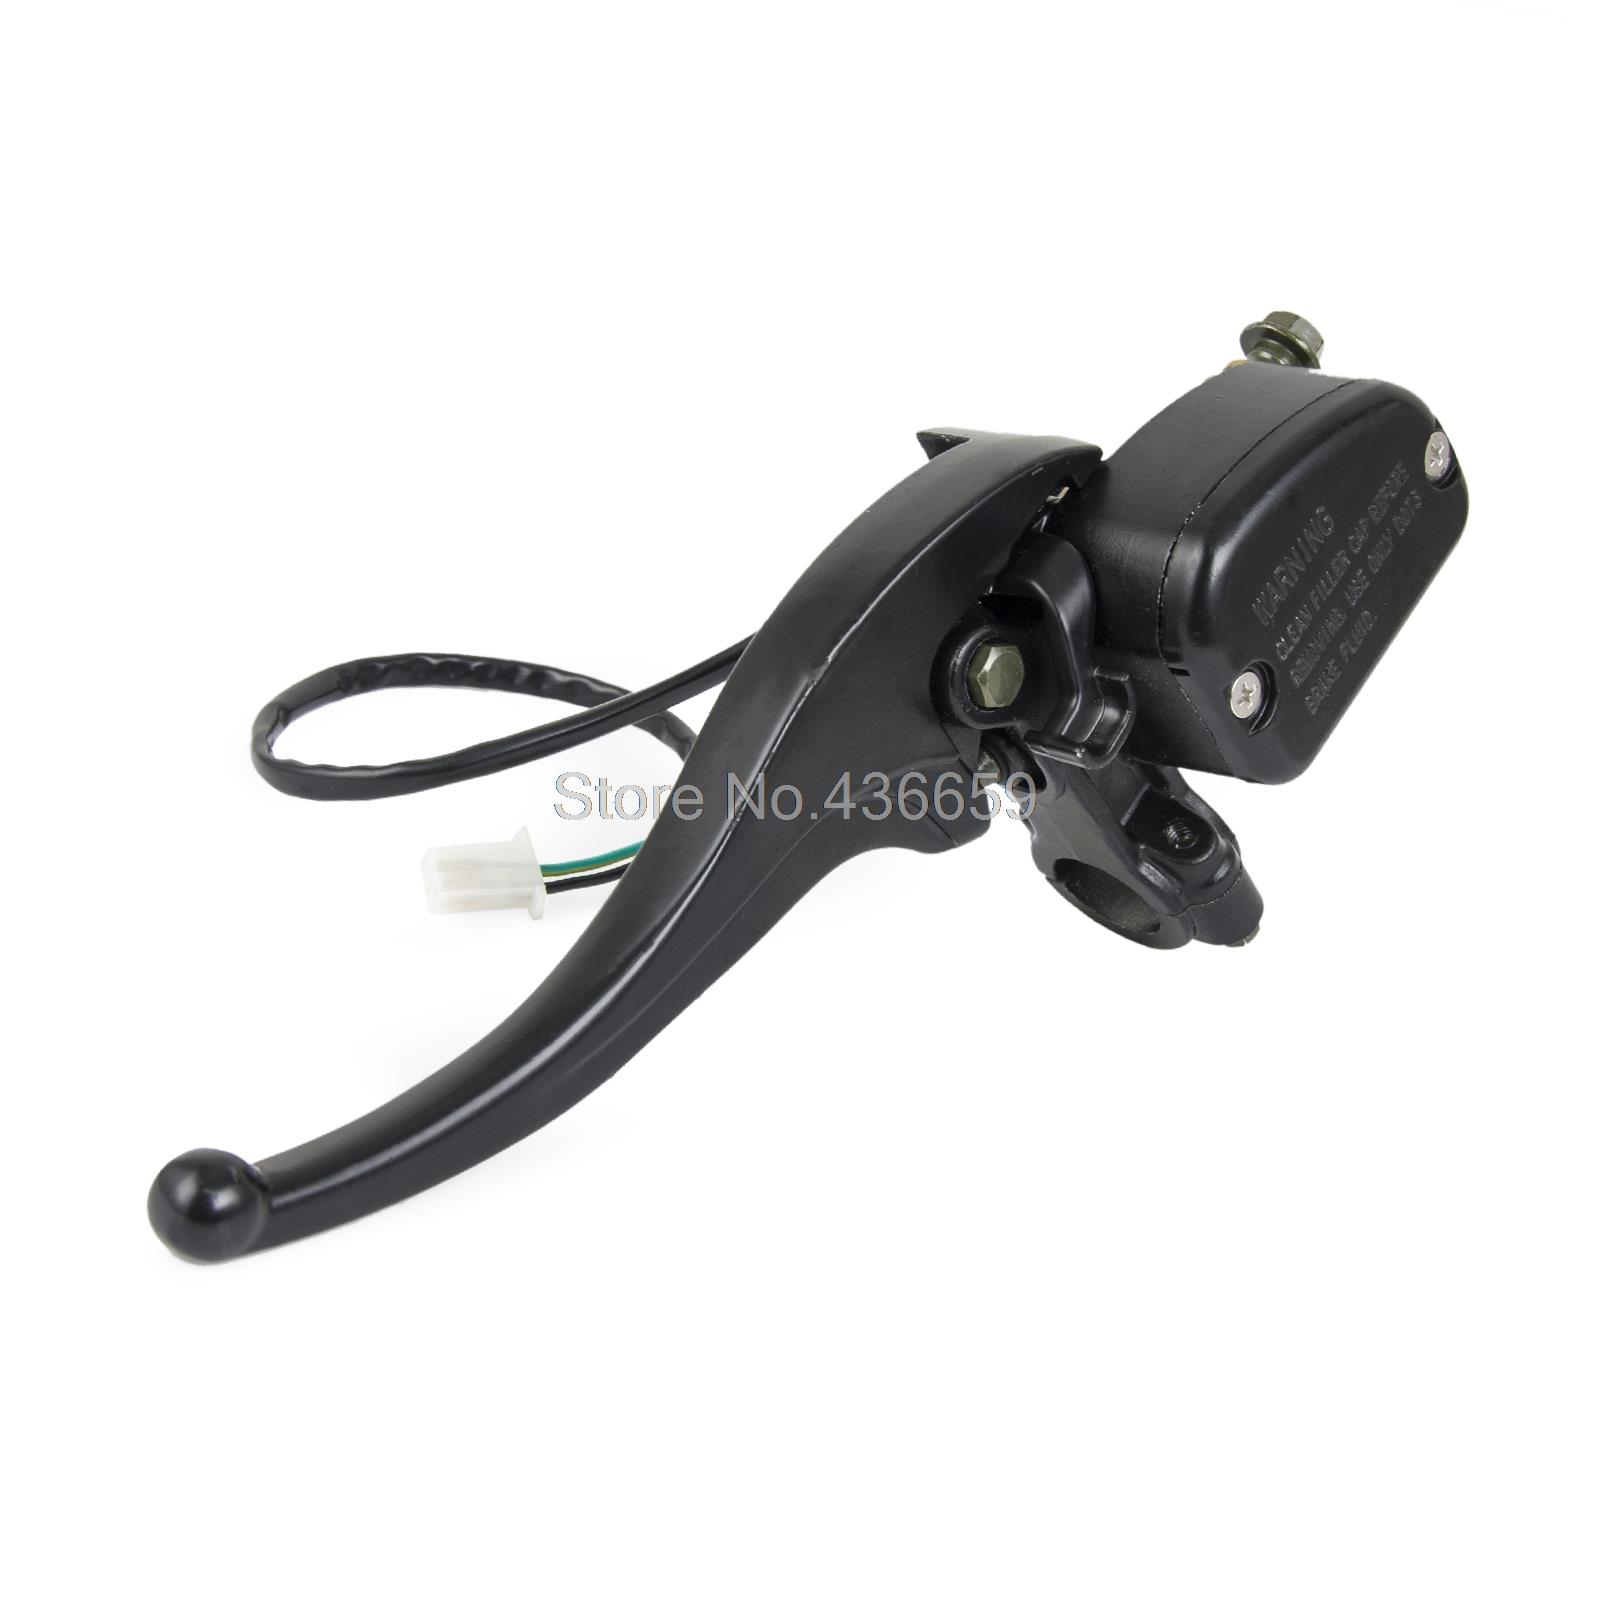 Front Brake Master Cylinder For Polaris Scrambler 500 850 Sportsman 700 800 850 авто лифан в перми